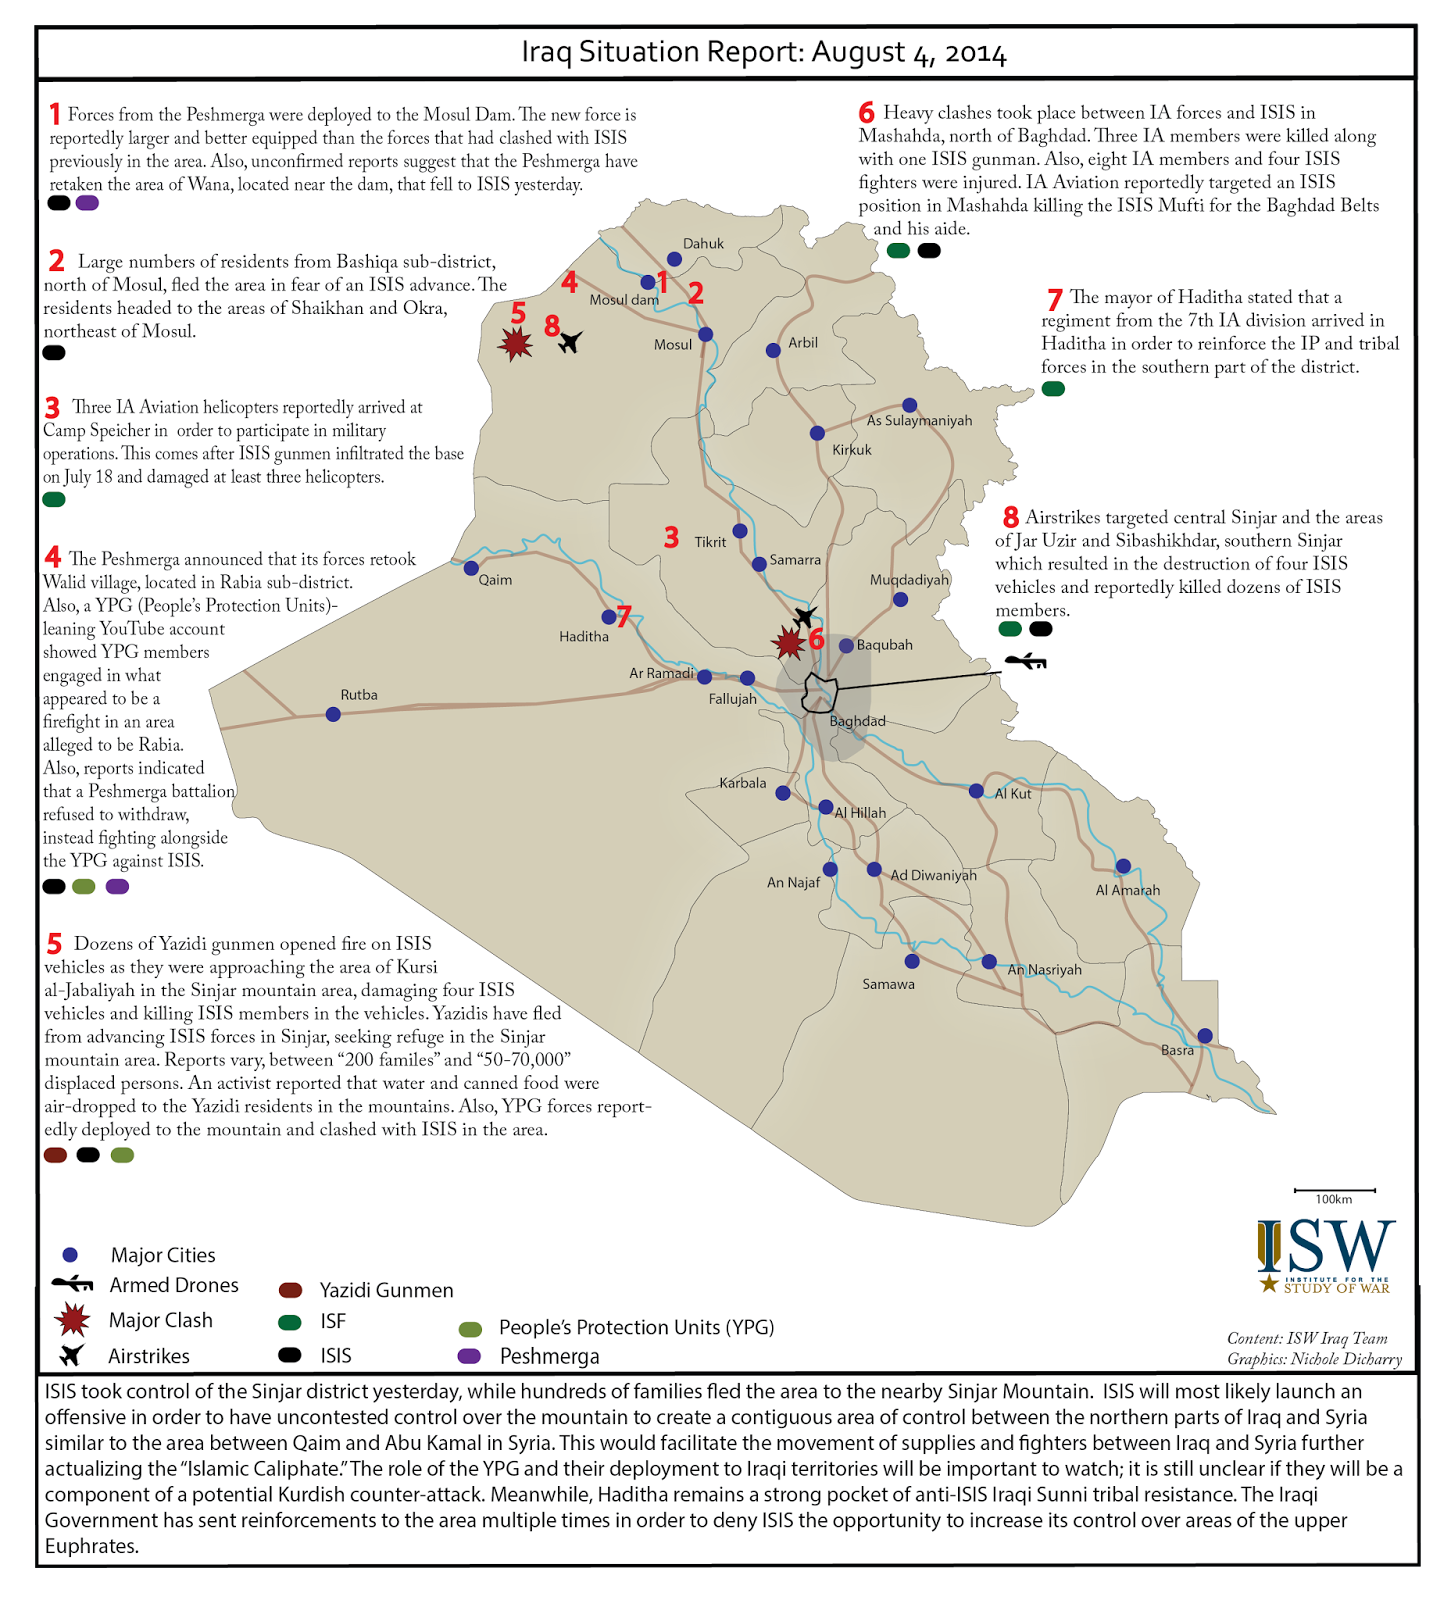 ISW Blog Iraq Situation Report August 4 2014 – Situation Report